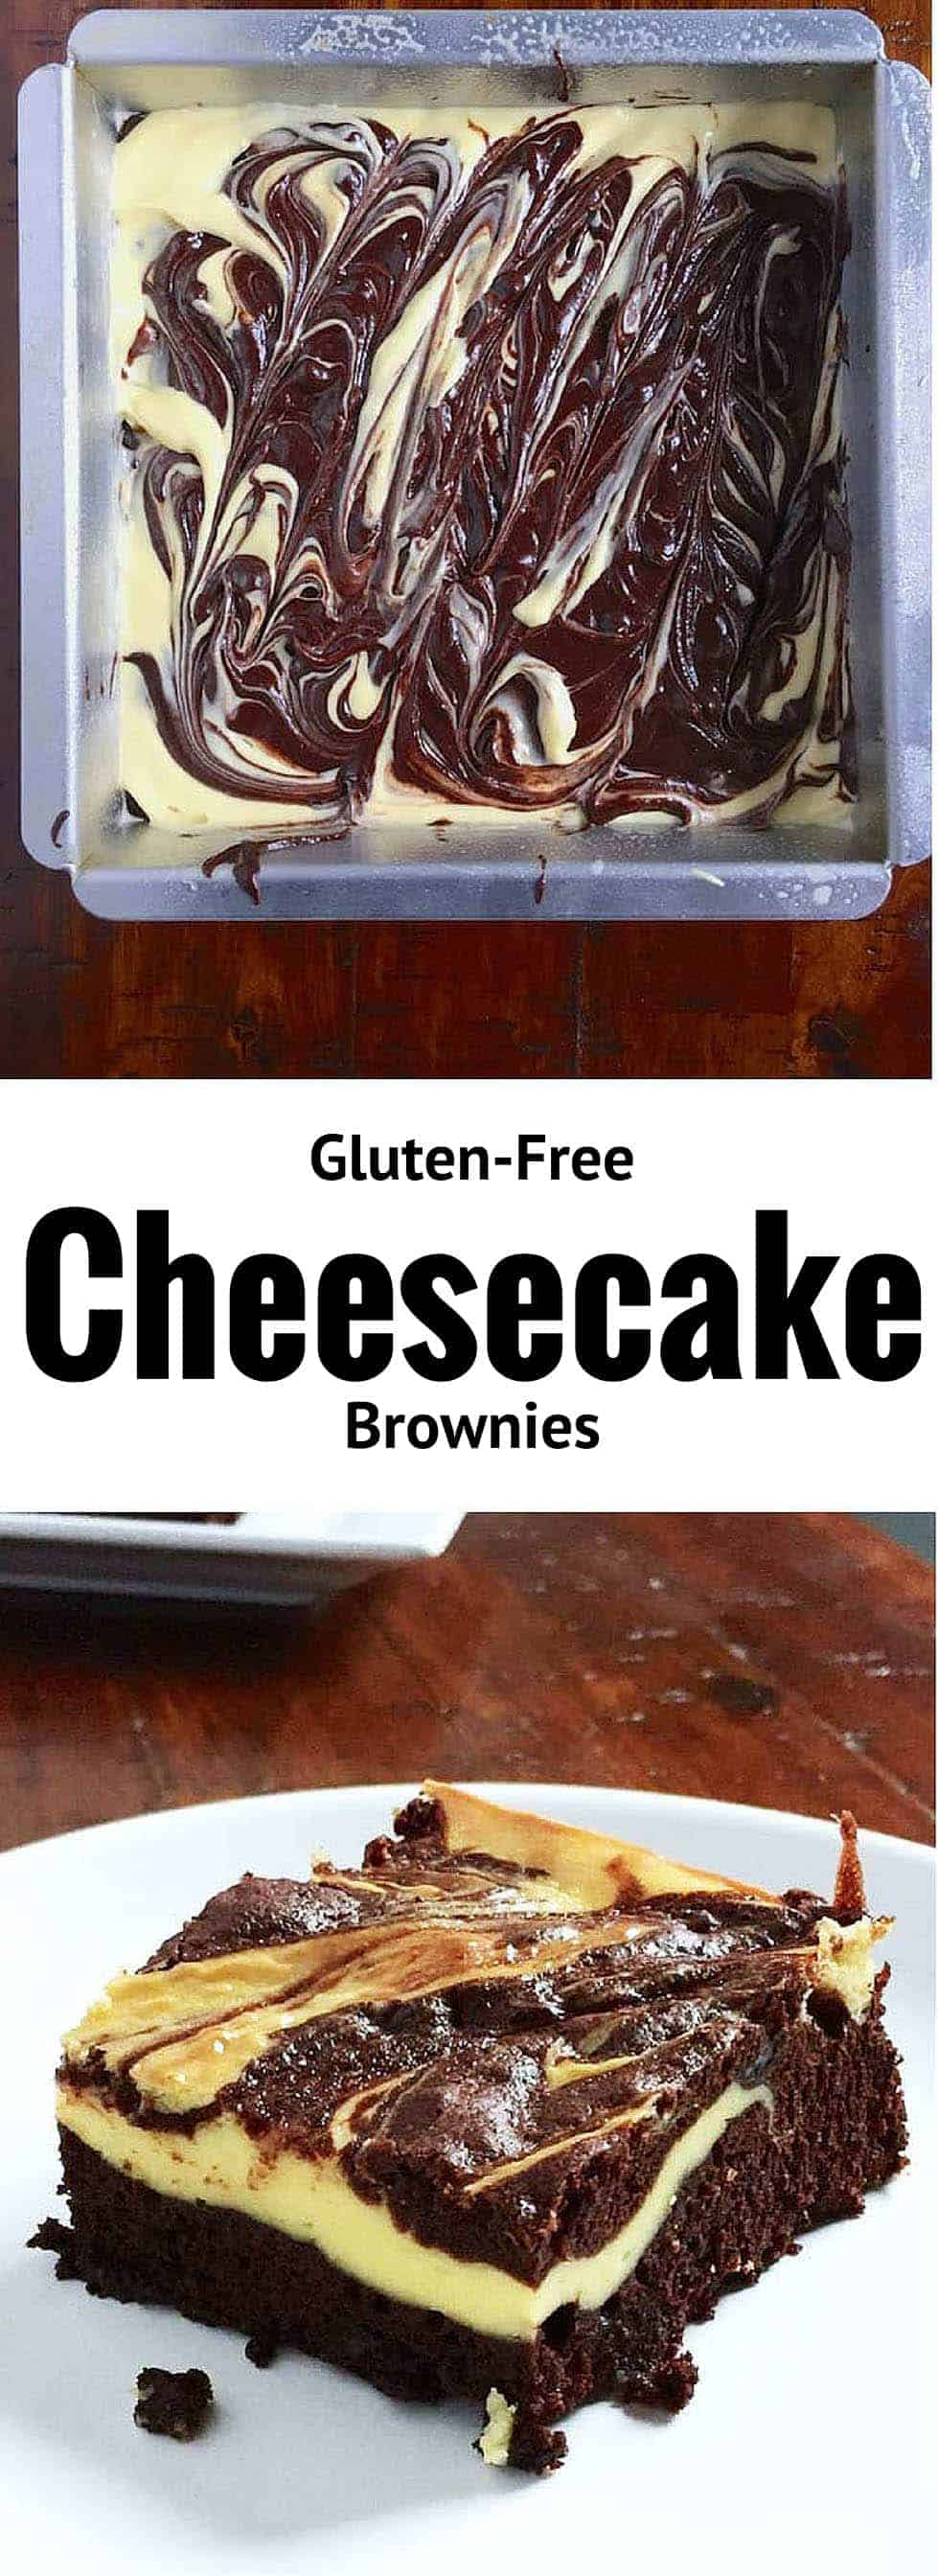 Gluten-Free Cheesecake Brownies